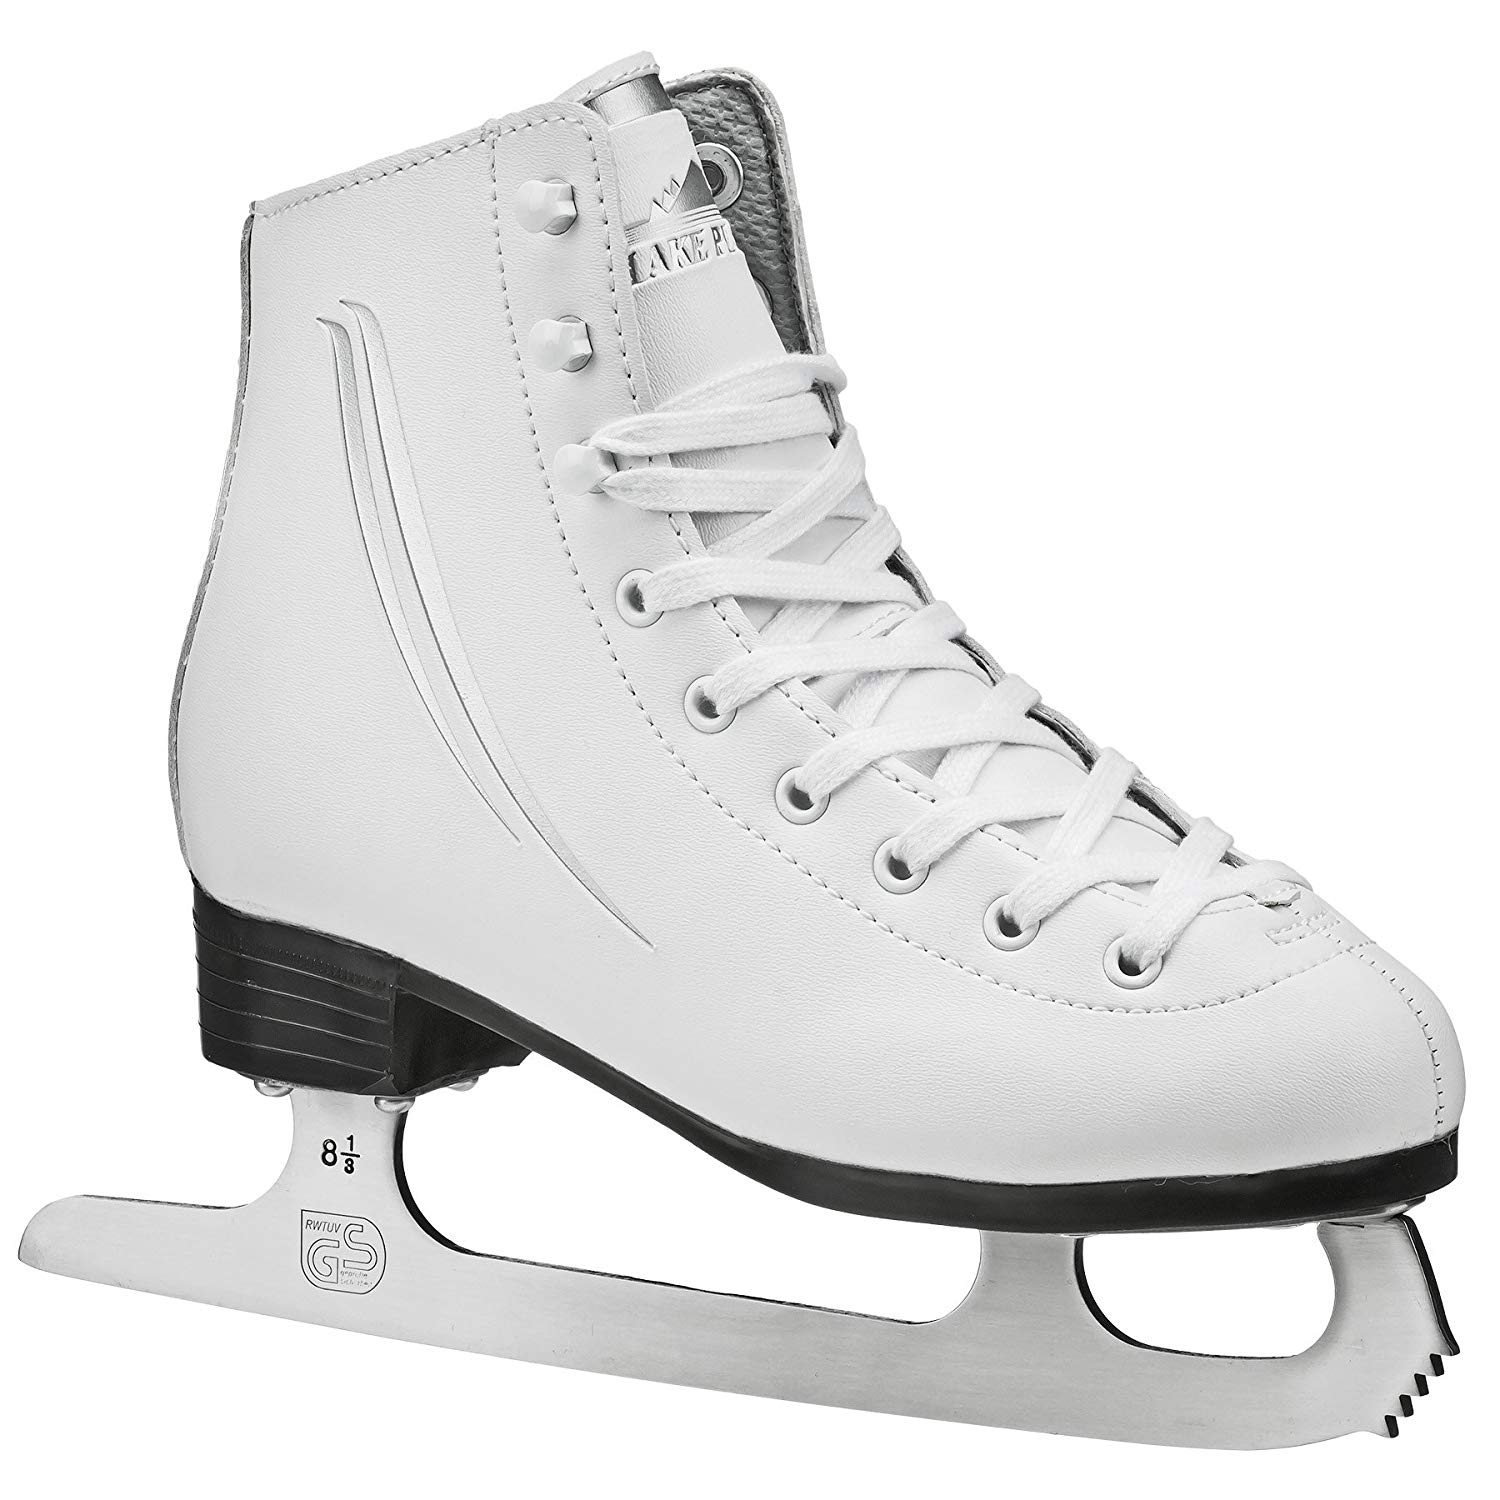 Traveller Location : Lake Placid Cascade Girls Figure Ice Skate : Sports & Outdoors